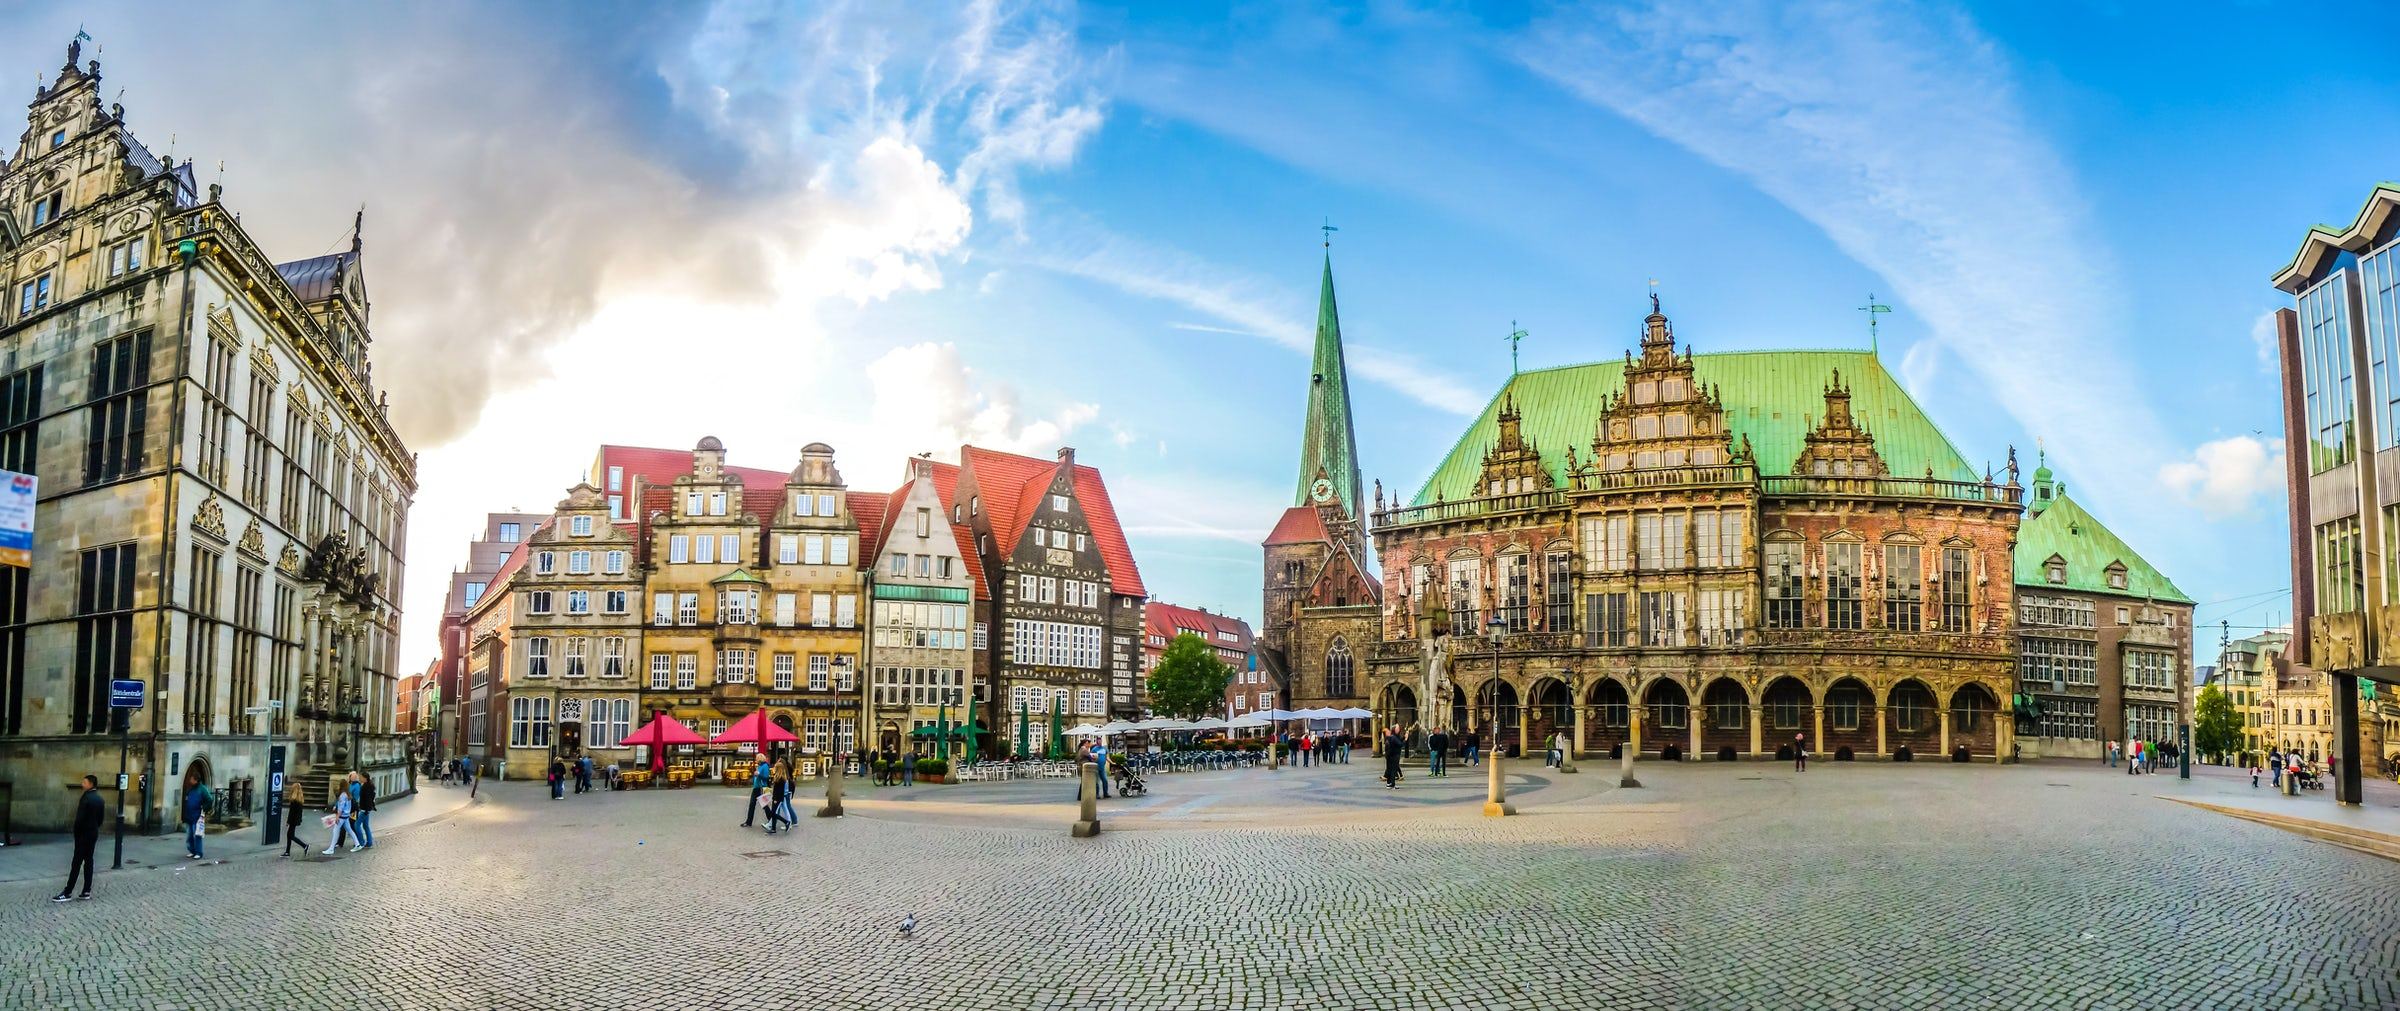 Bremen: The City of The Brothers Grimm Fairy Tale | itinari - photo#35